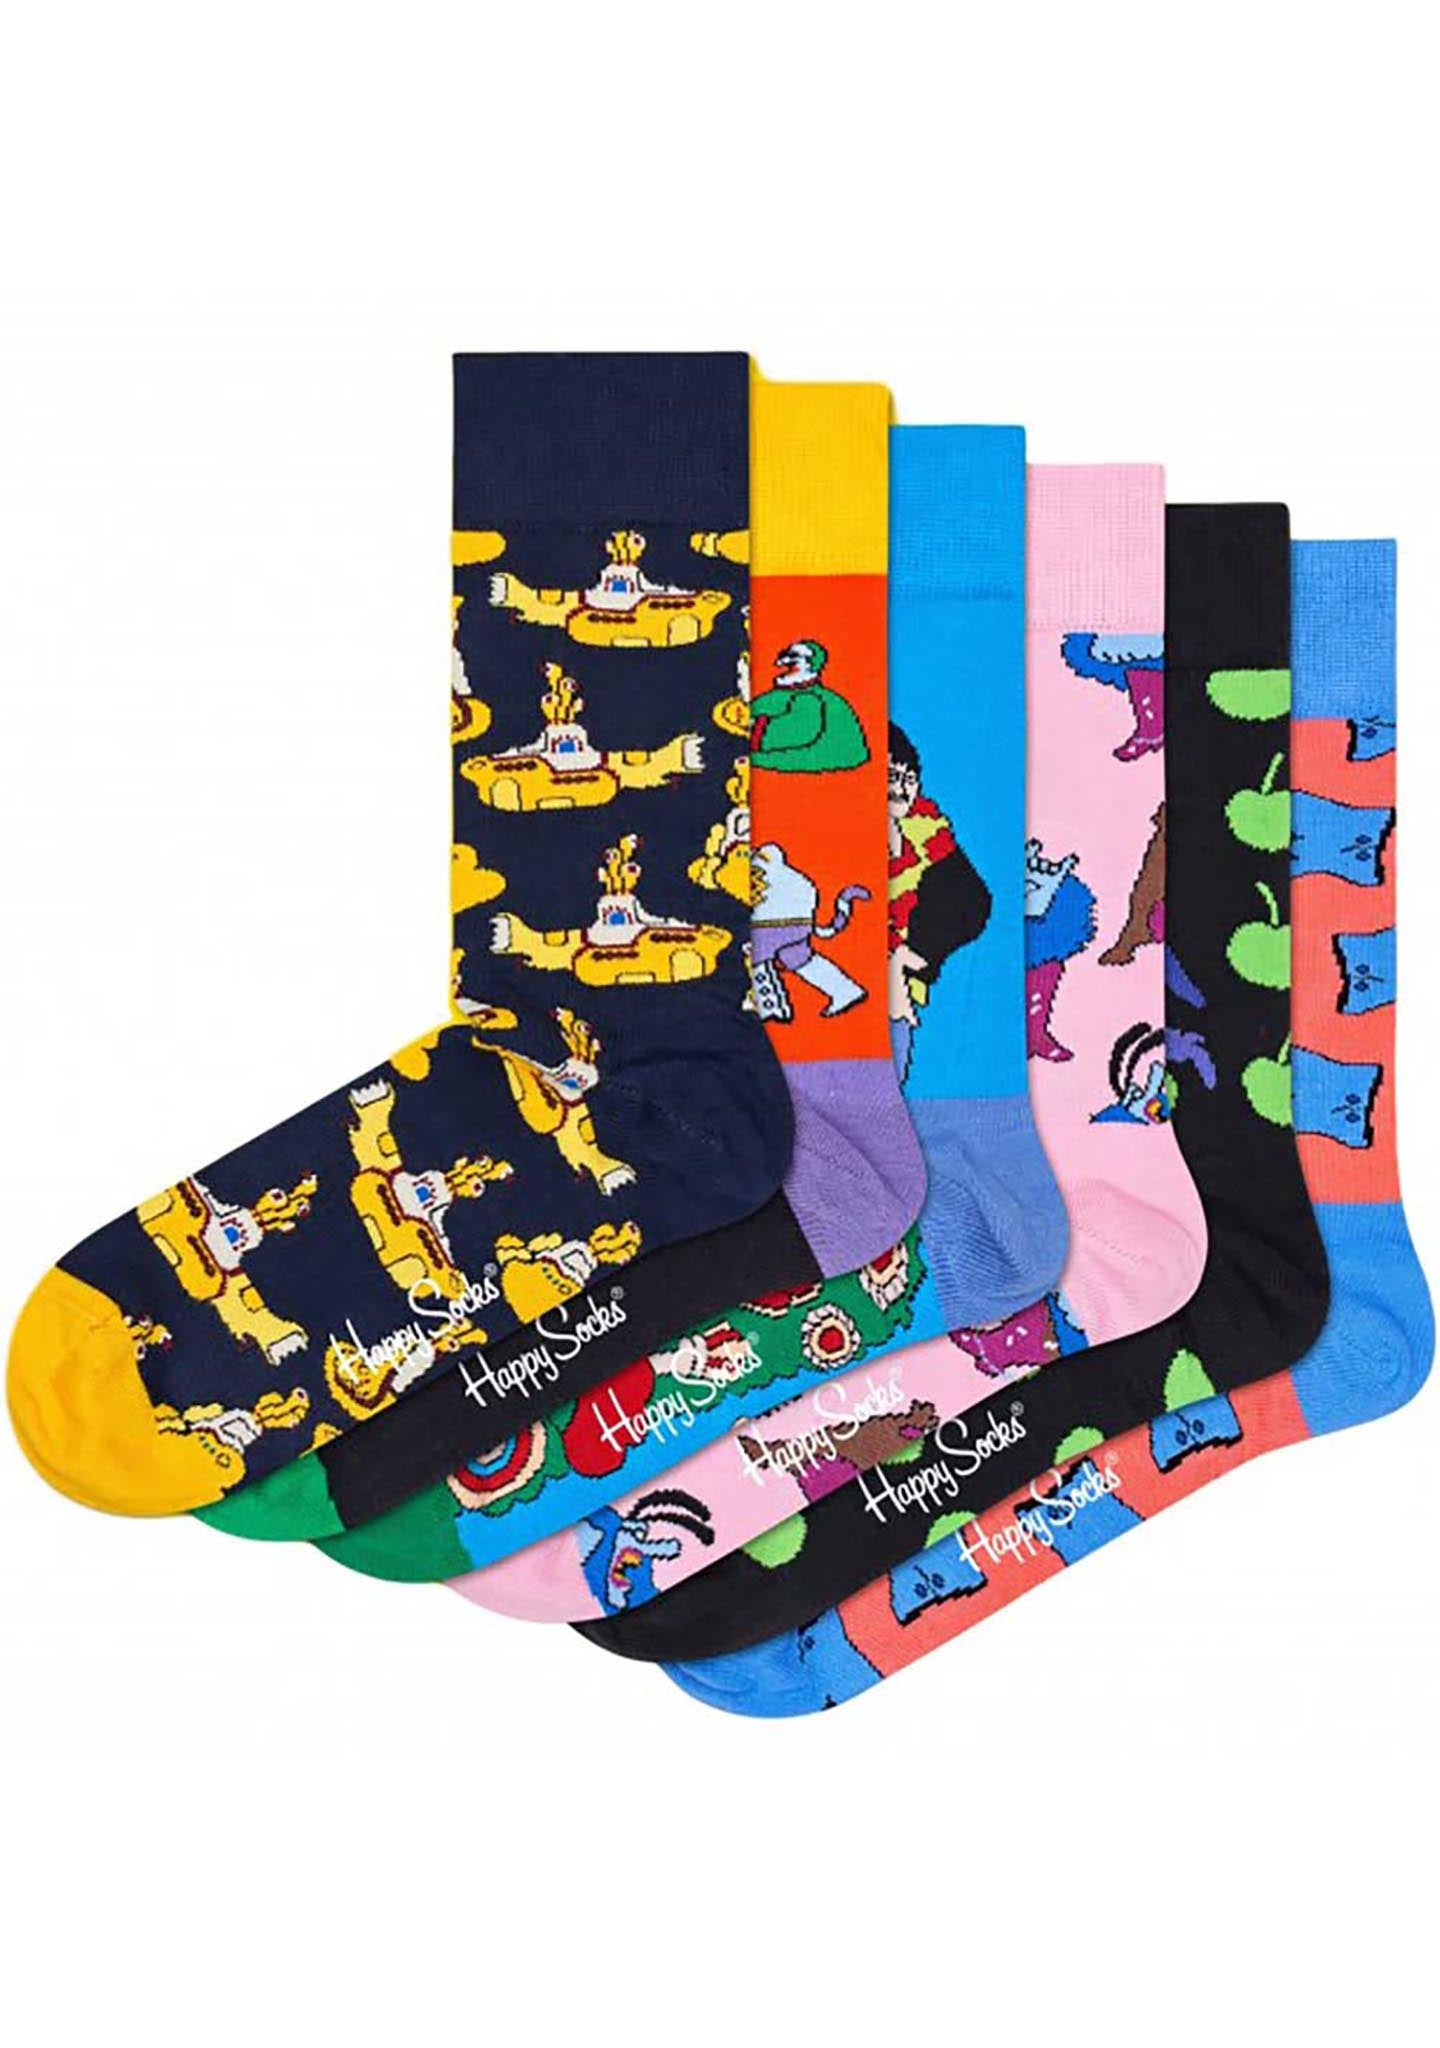 Happy Socks Limited Edition Beatles 6pk Gift Set